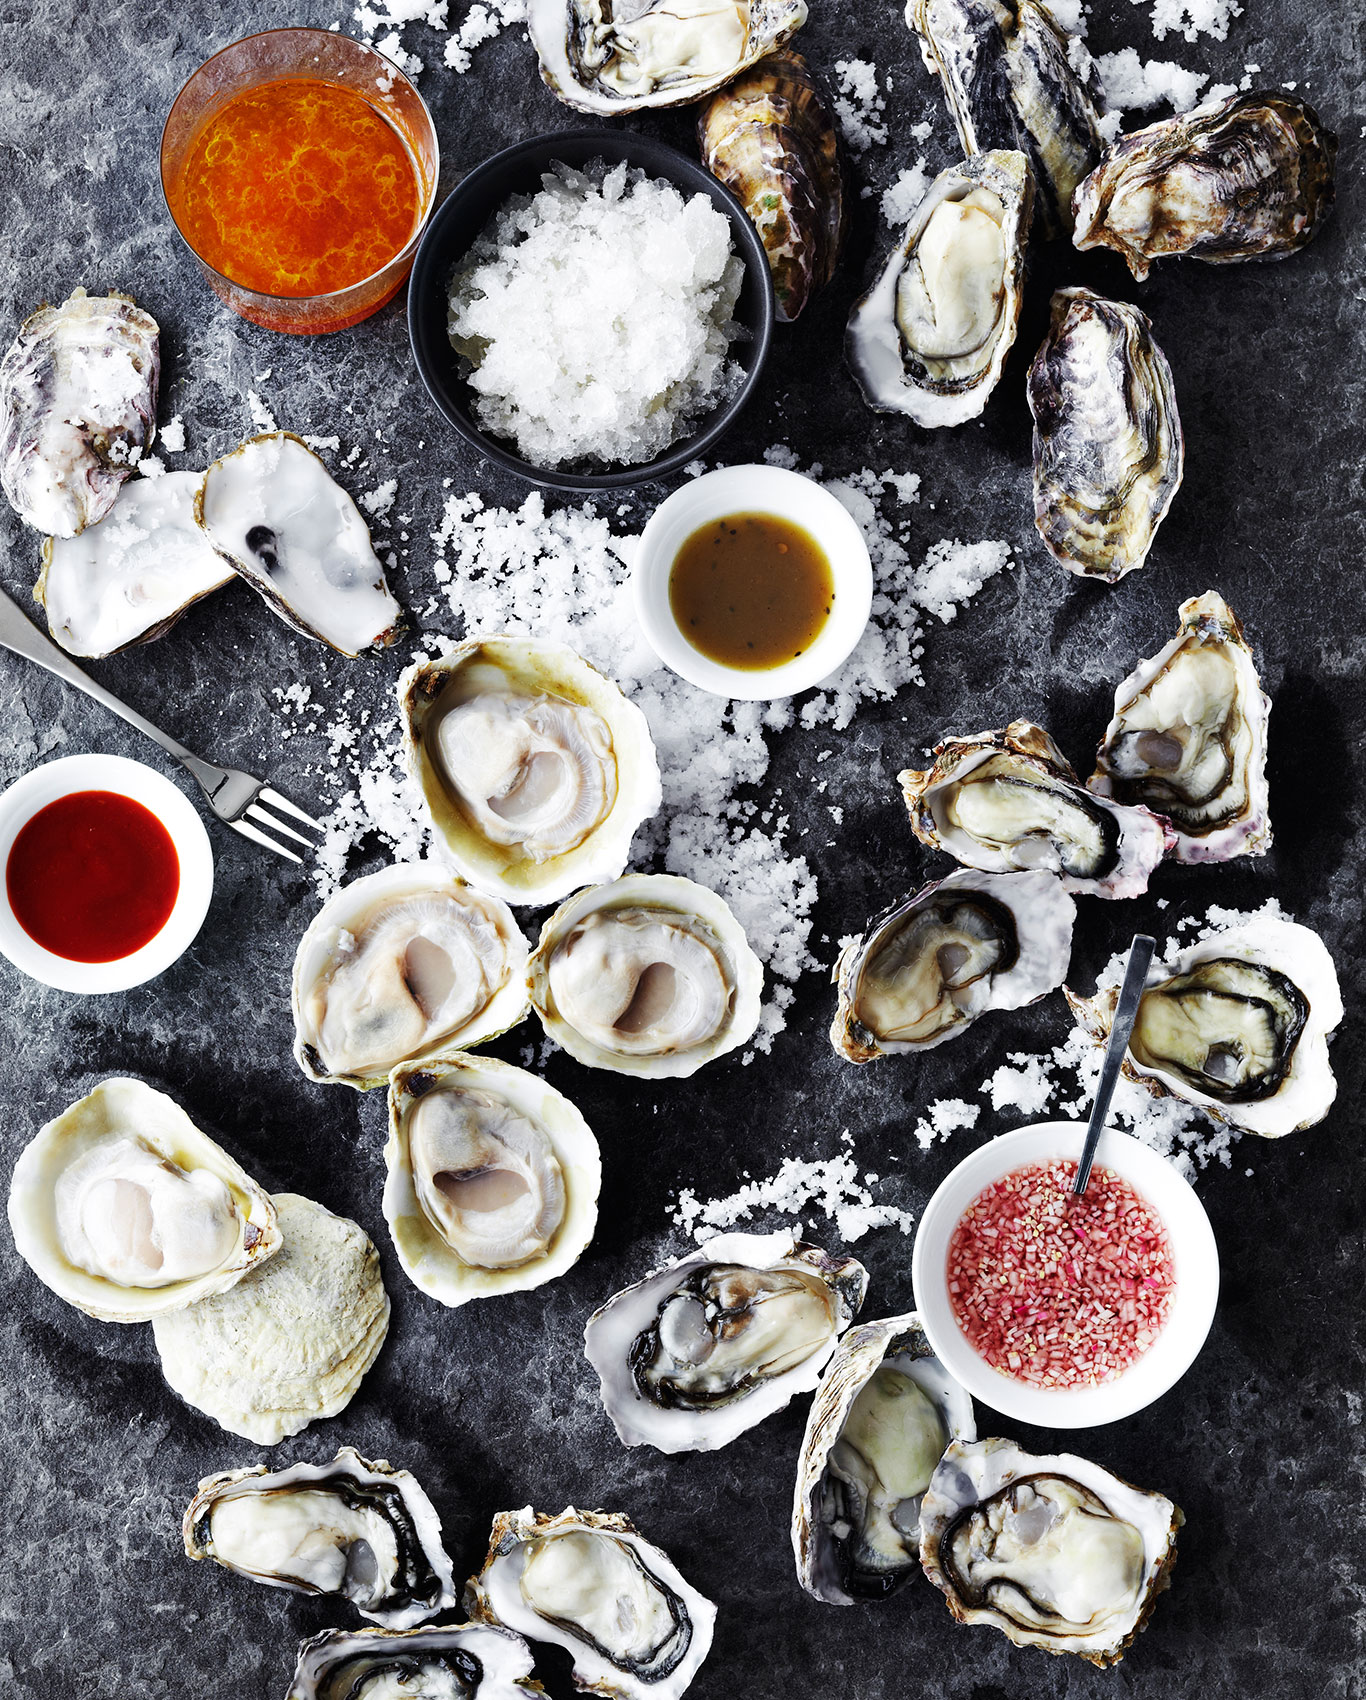 TheFoodStore_Shellfish_Oysters_13